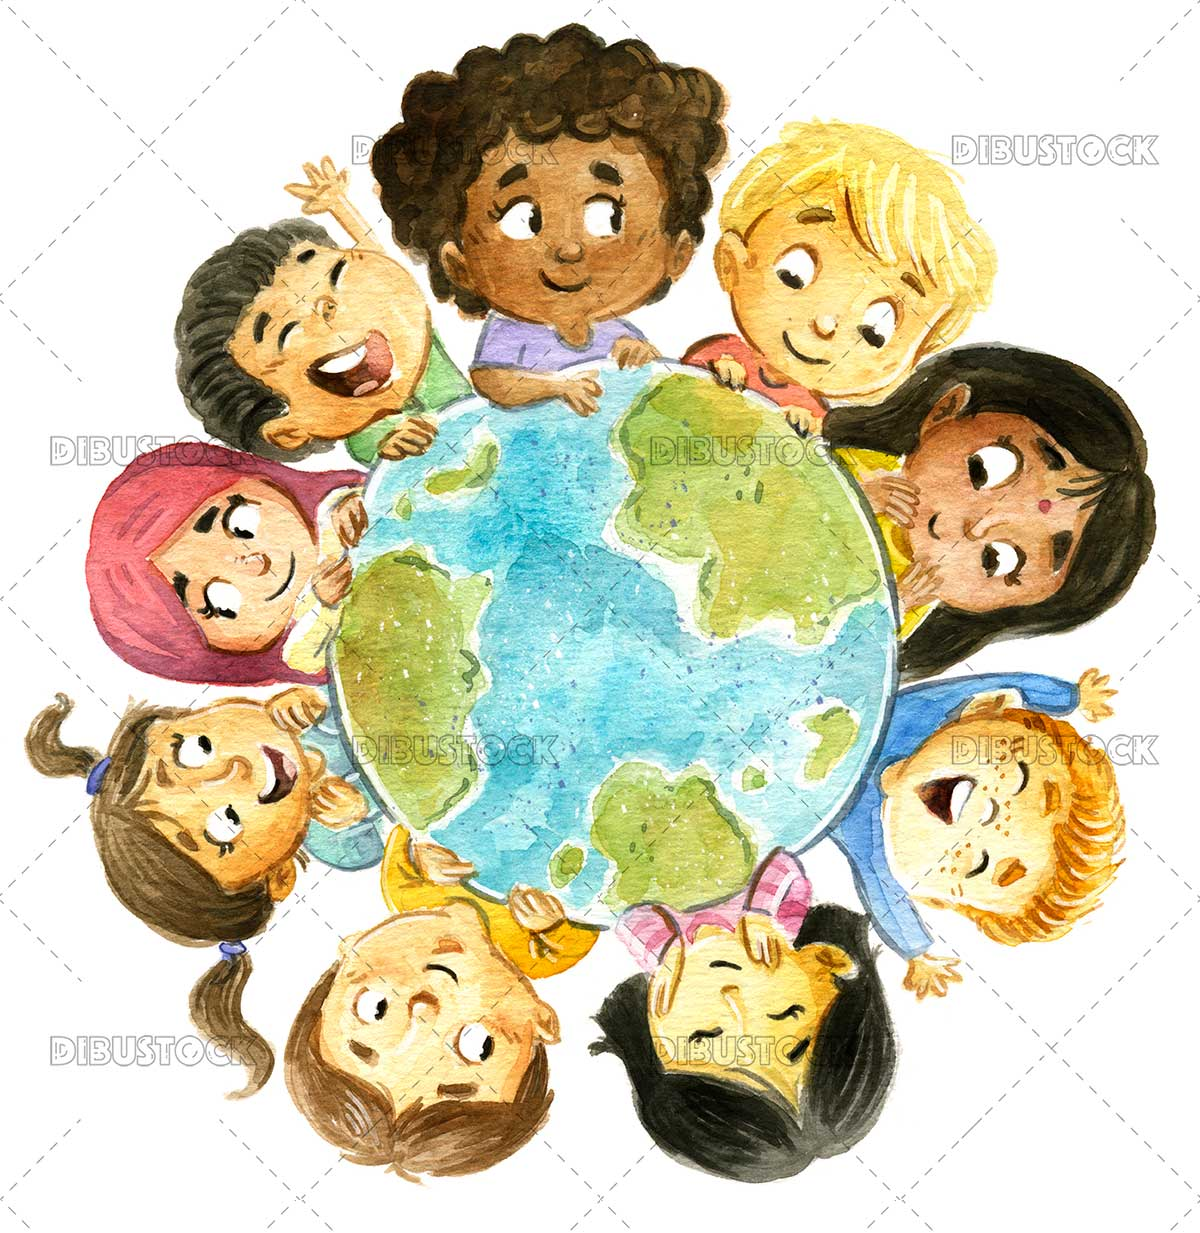 Children of different ethnicities around the planet earth.